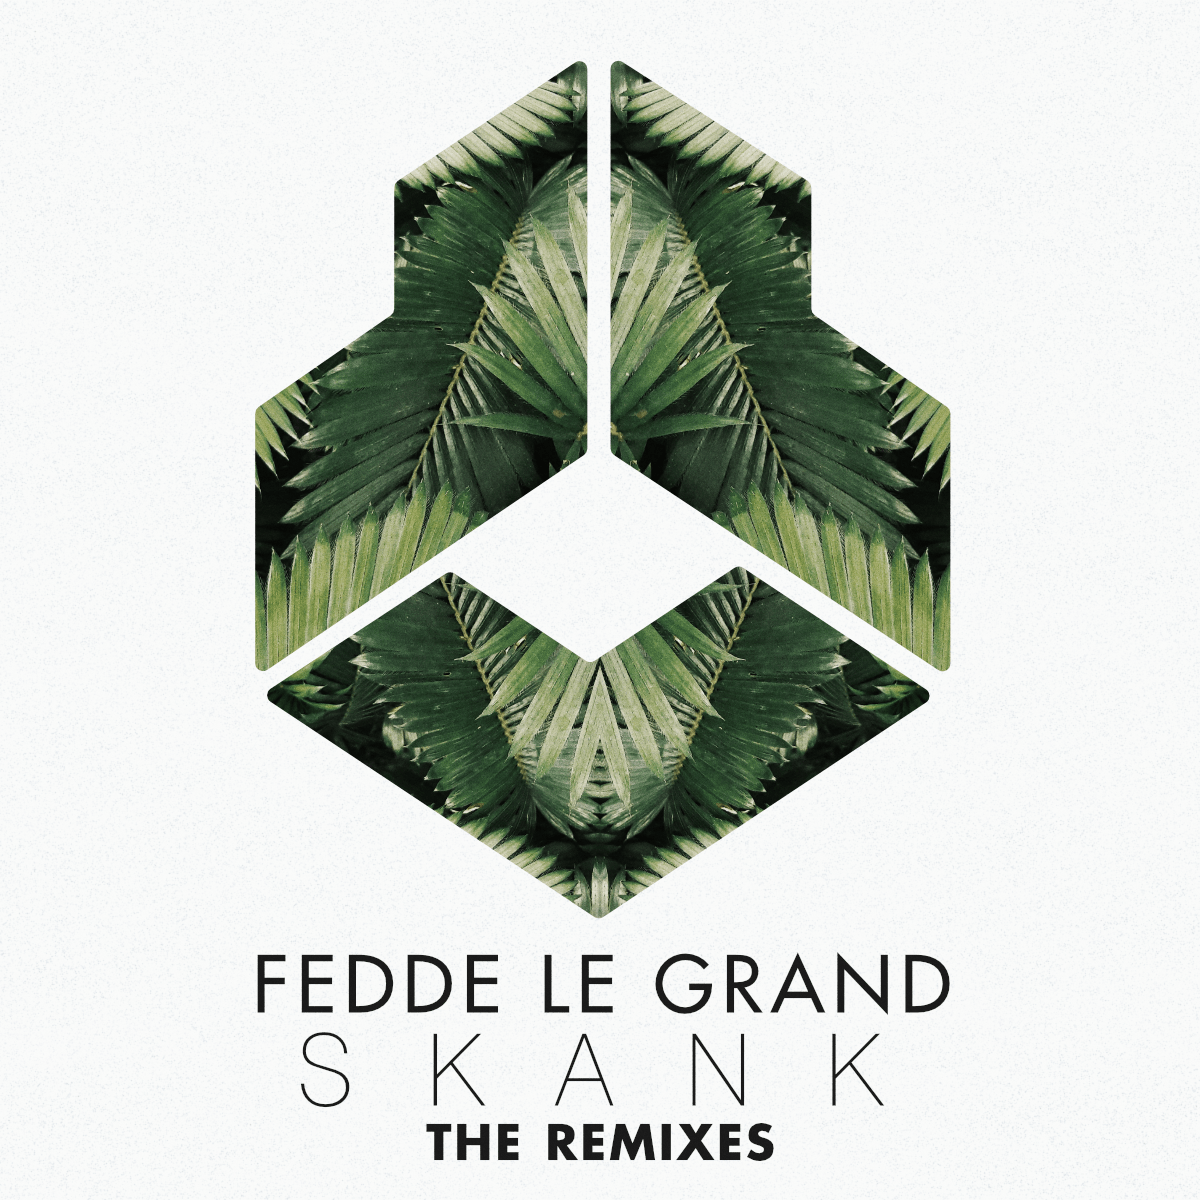 Fedde Le Grand - Skank (The Remixes)